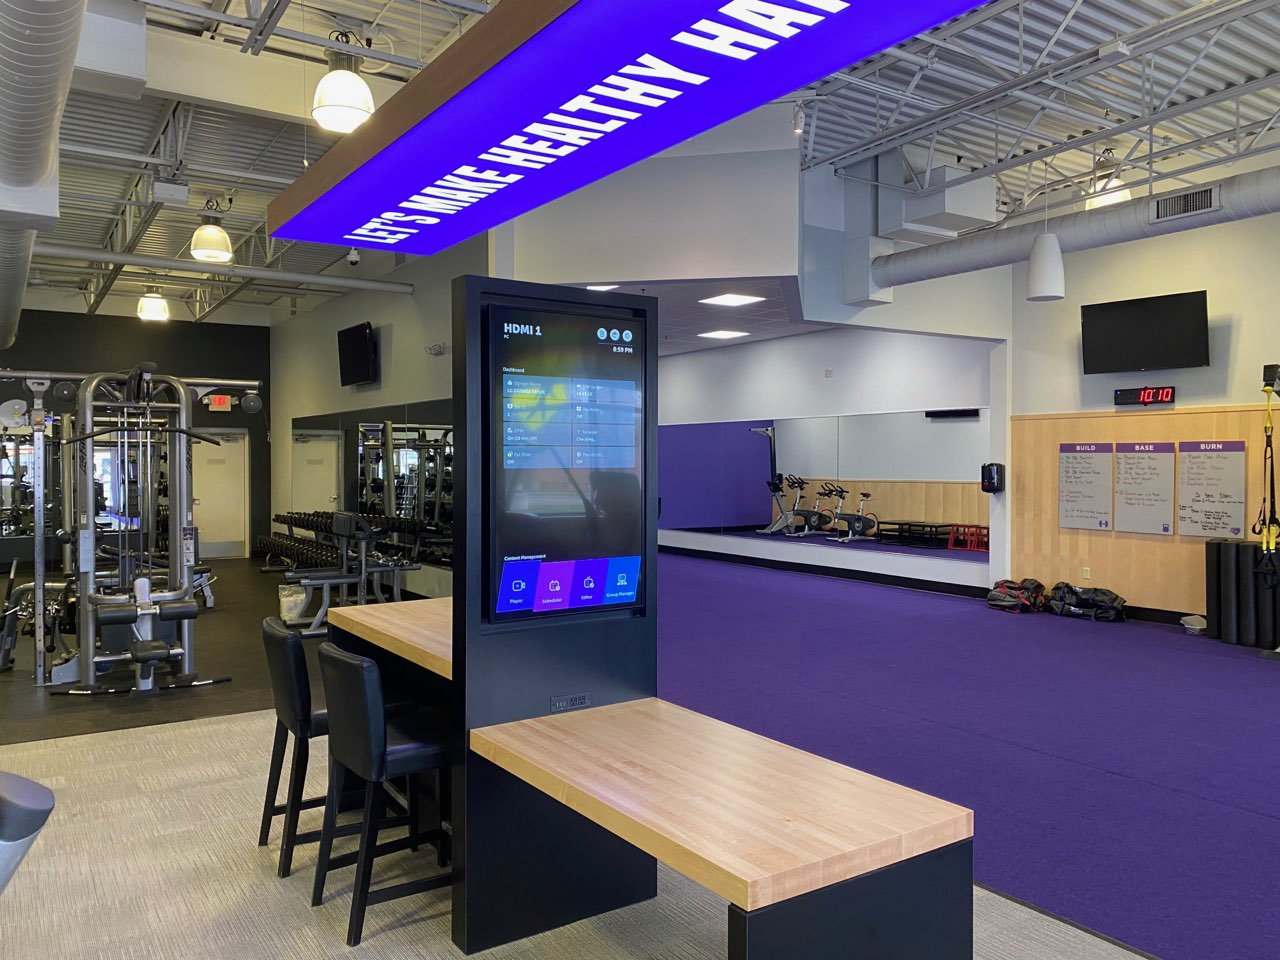 Anytime Fitness Plans Third Sioux Falls Location Siouxfalls Business